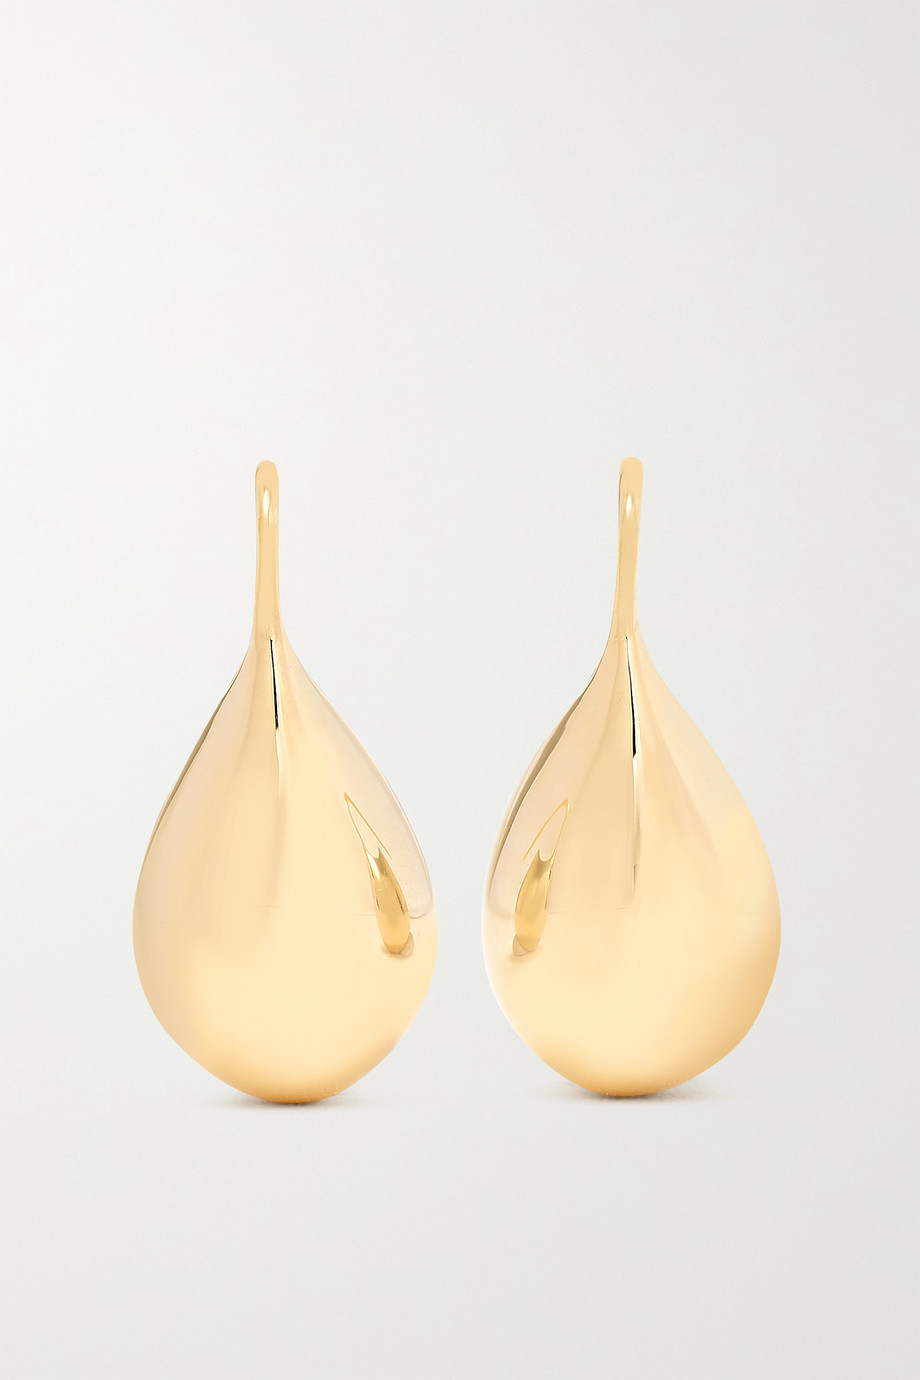 KHIRY FINE Small Jug Drops 18-karat gold earrings